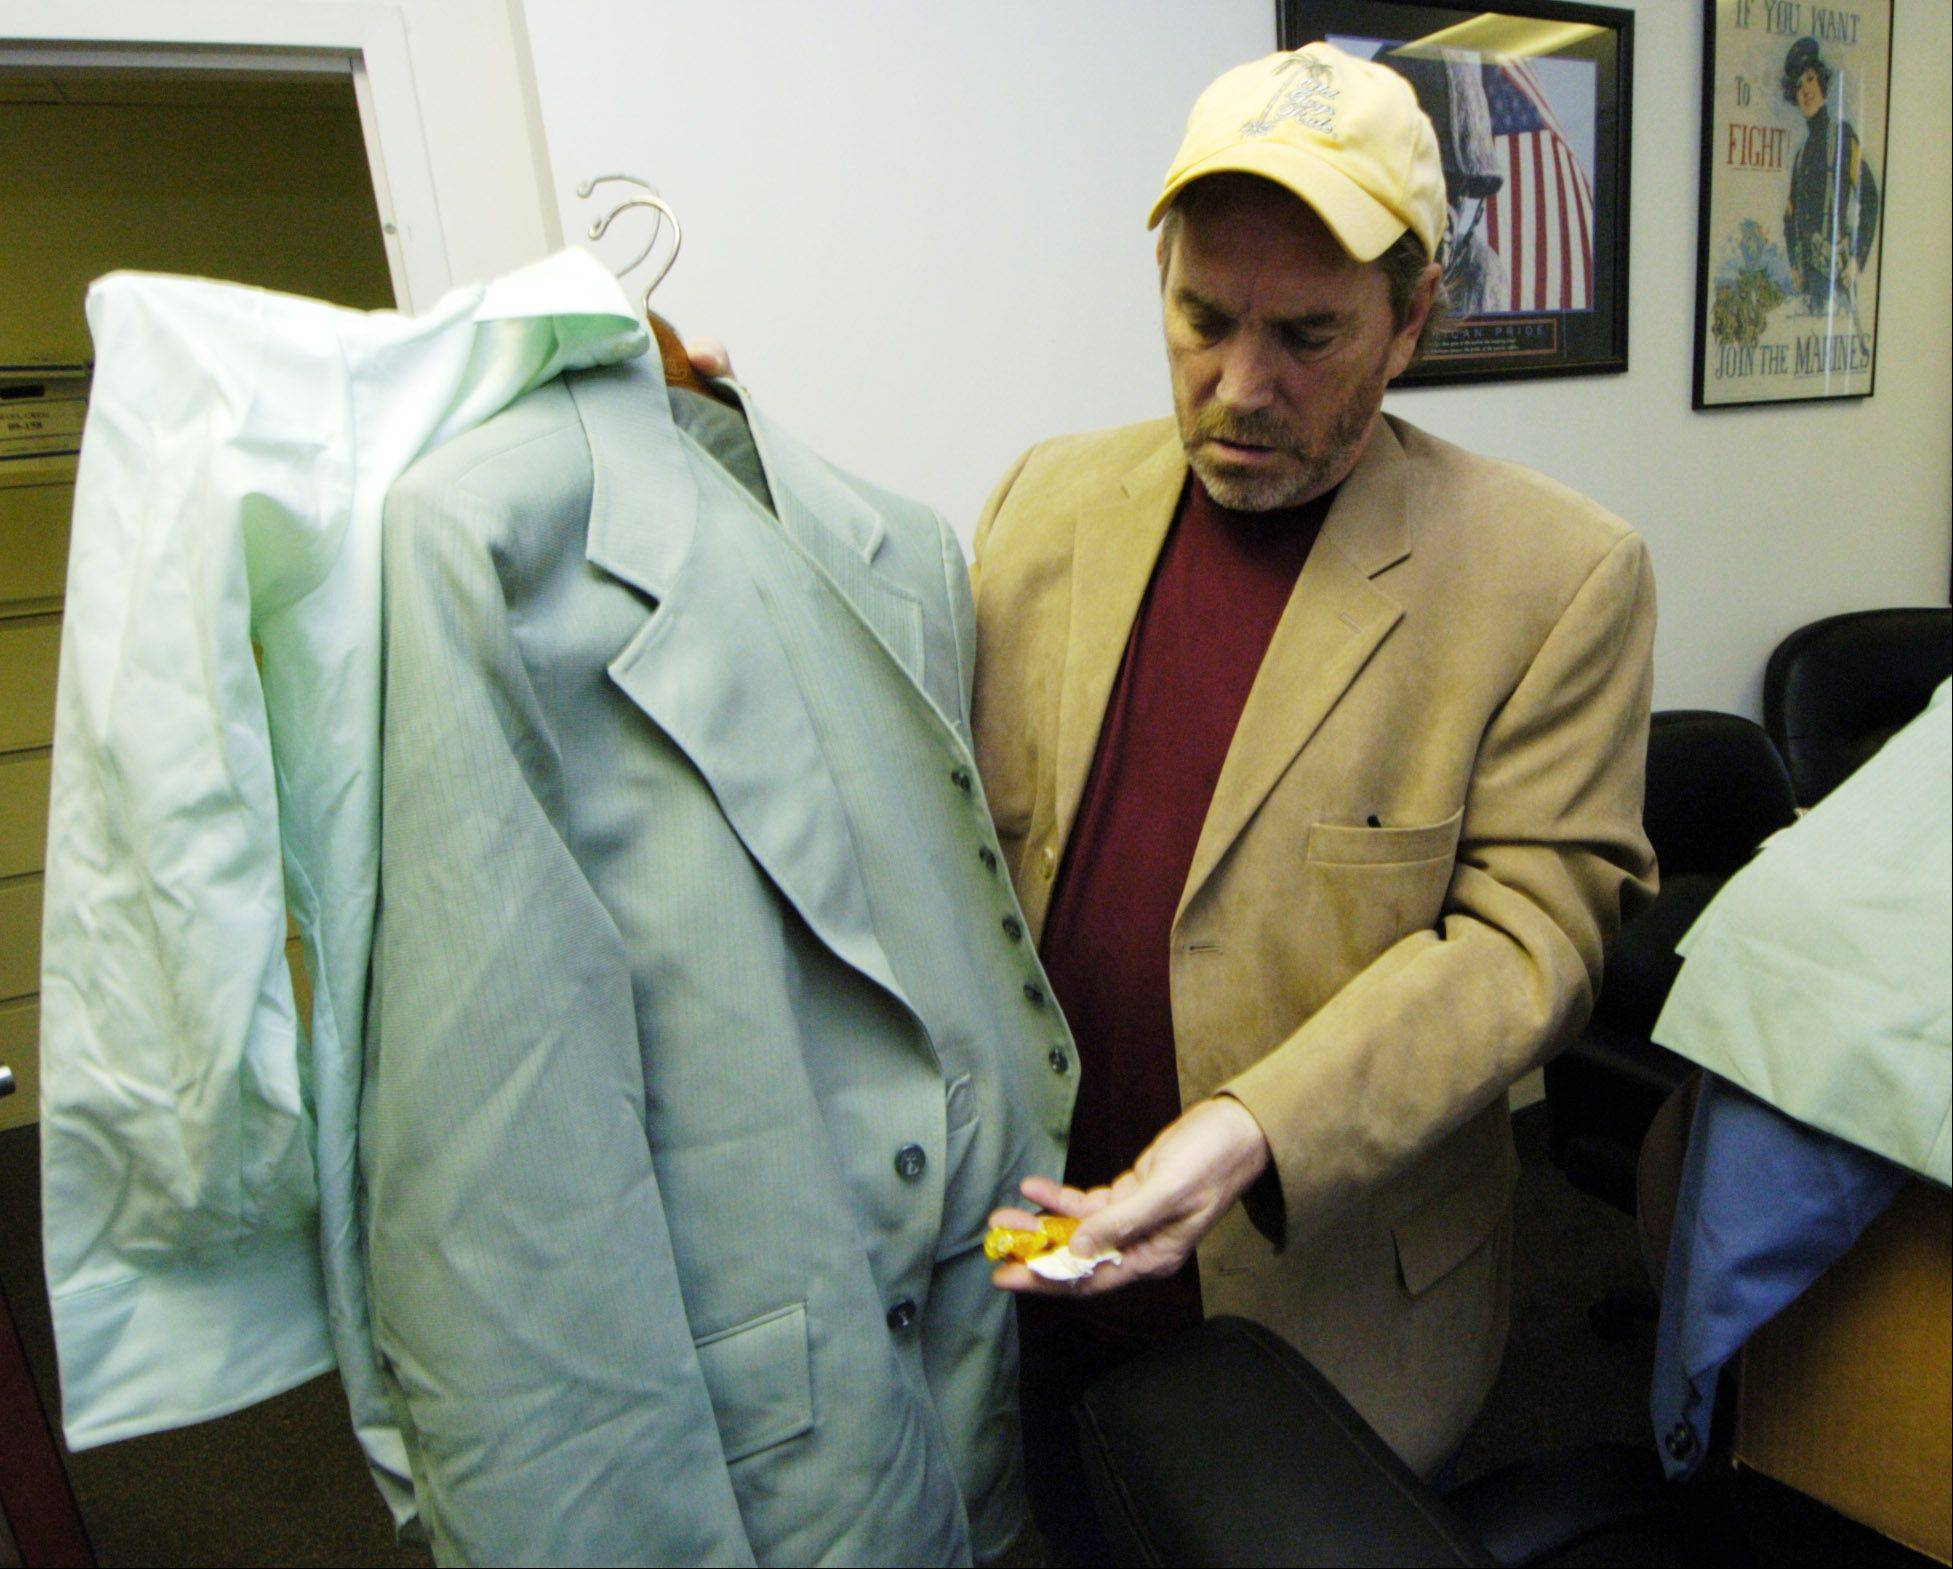 "Danny Broderick holds a suit which notorious killer John Wayne Gacy wore to court. One pocket of the suit still holds butter scotch candies. Broderick co-authored a book with Sam Amirante, John Wayne Gacy's defense attorney, entitled, ""Defending the Monster."""